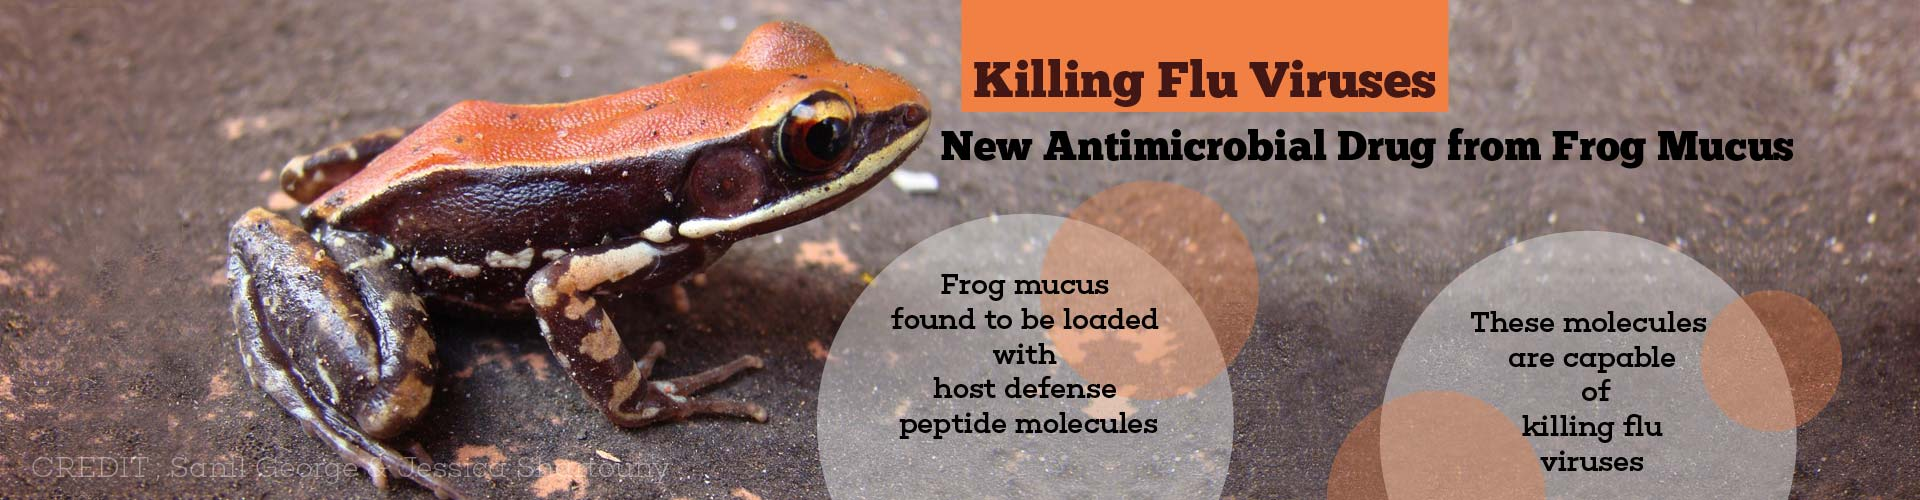 Can Frog Mucus Be the New Antimicrobial Drug to Kill Flu Viruses